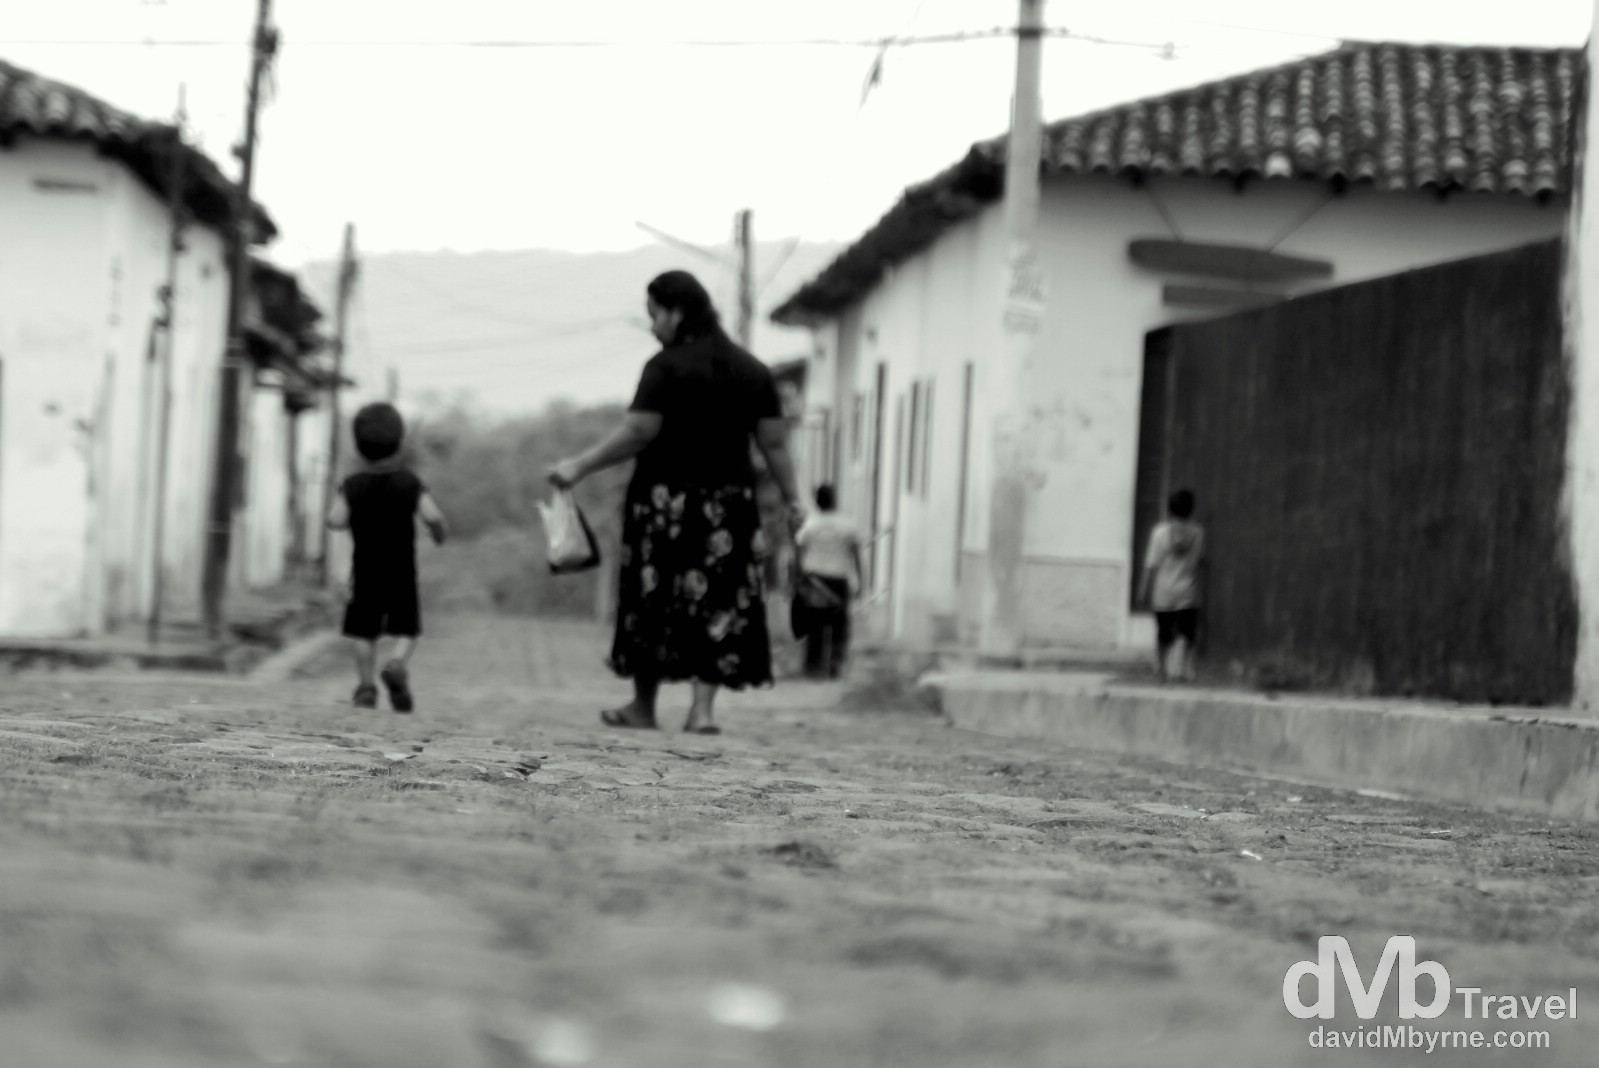 On the streets of Suchitoto, El Salvador. June 4th 2013.